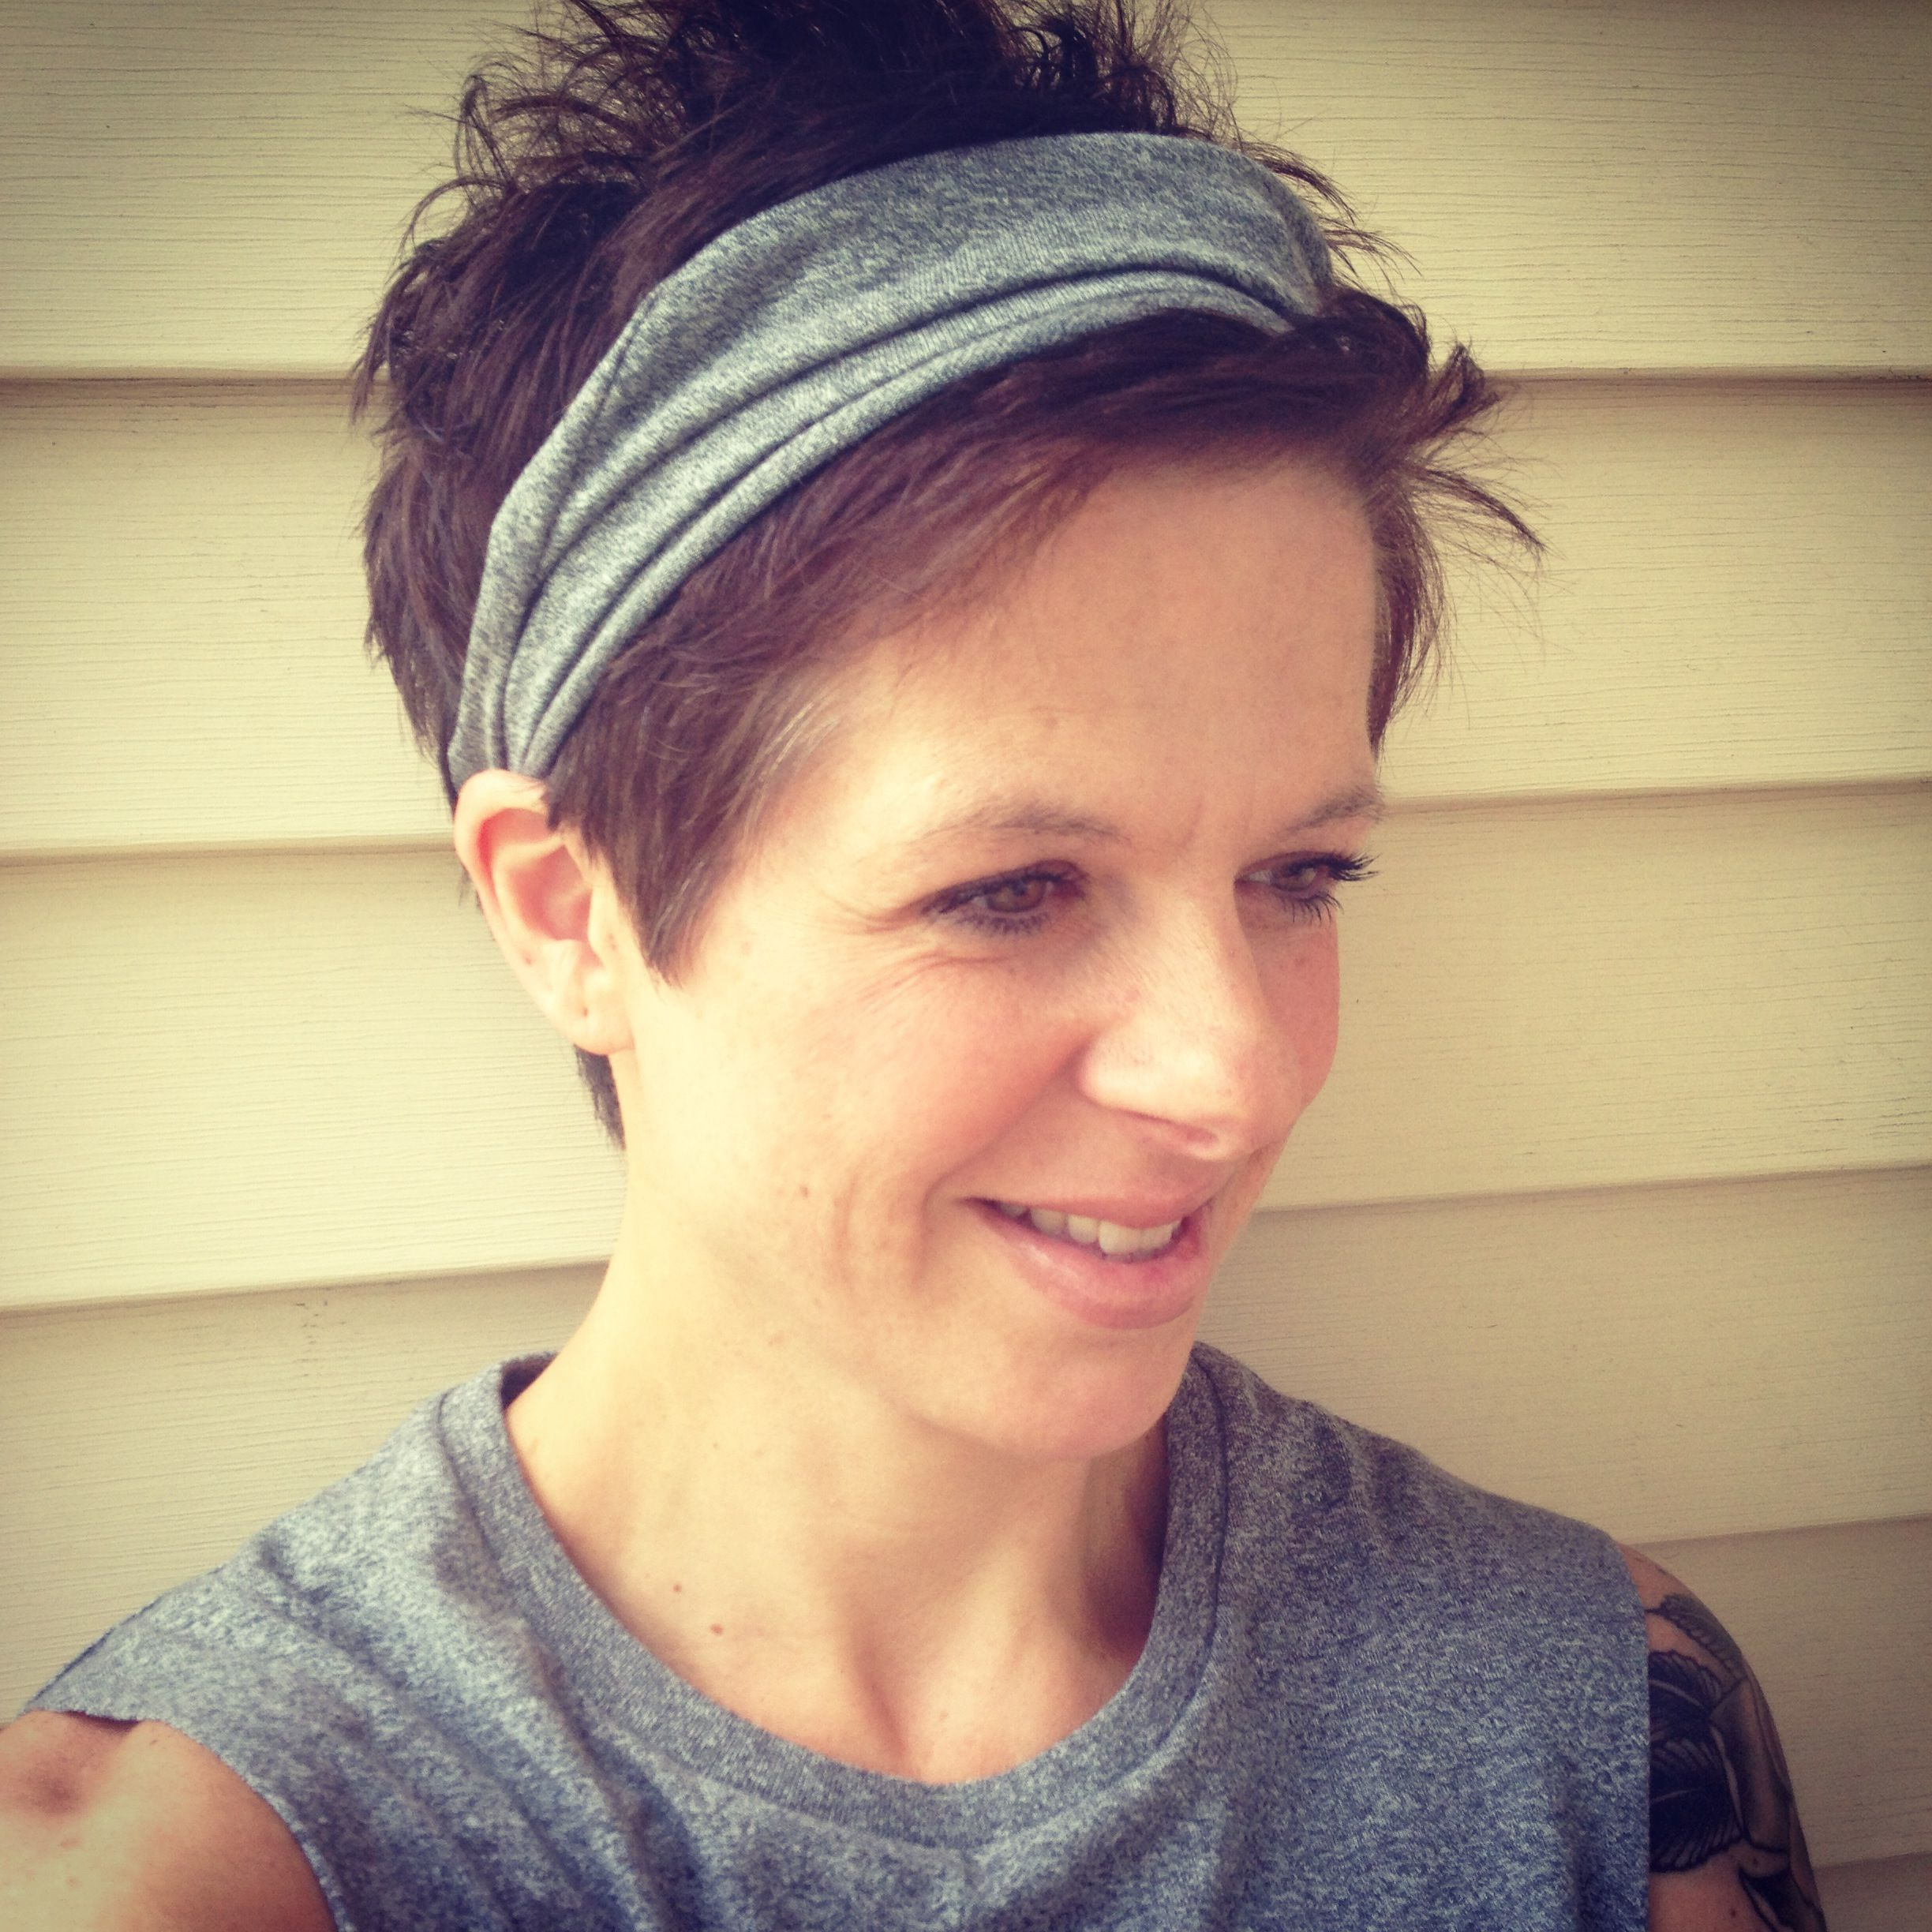 Pixie With Headband. Great Accessory For Short Hair (View 9 of 25)